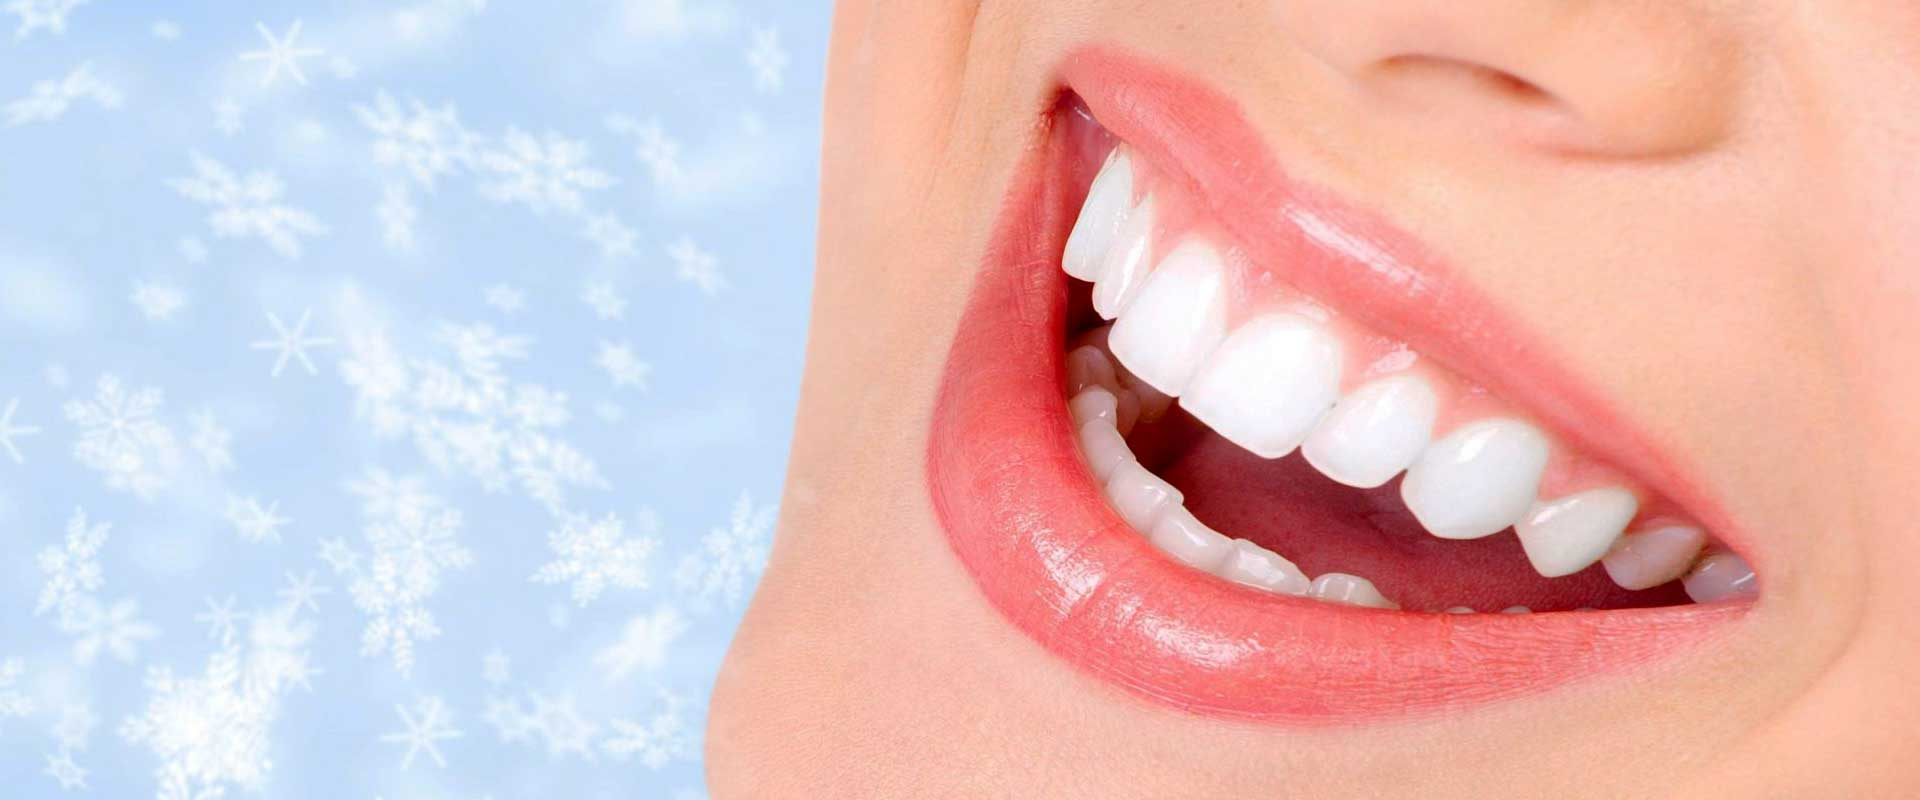 denture repairs denture service denture manufacturers exporters suppliers in india punjab ludhiana